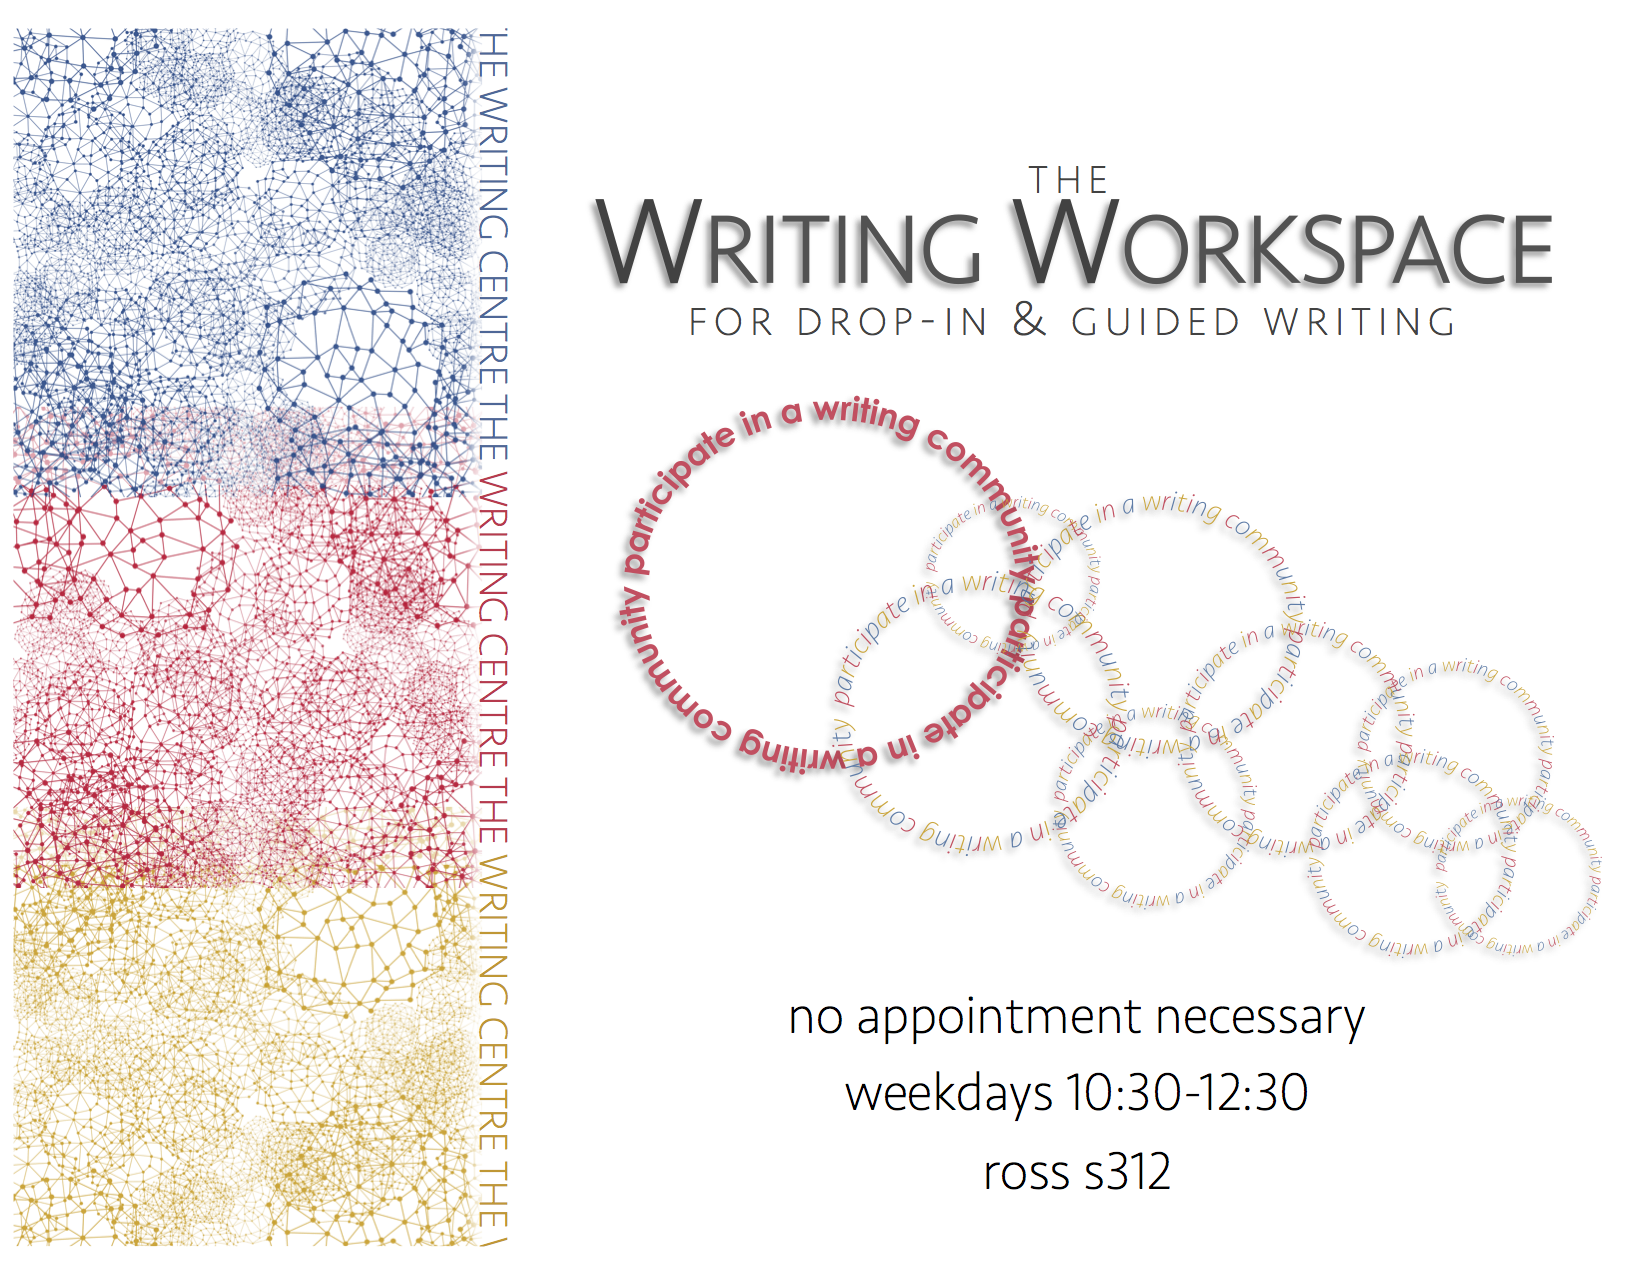 The Writing Workspace for drop-in and guided writing